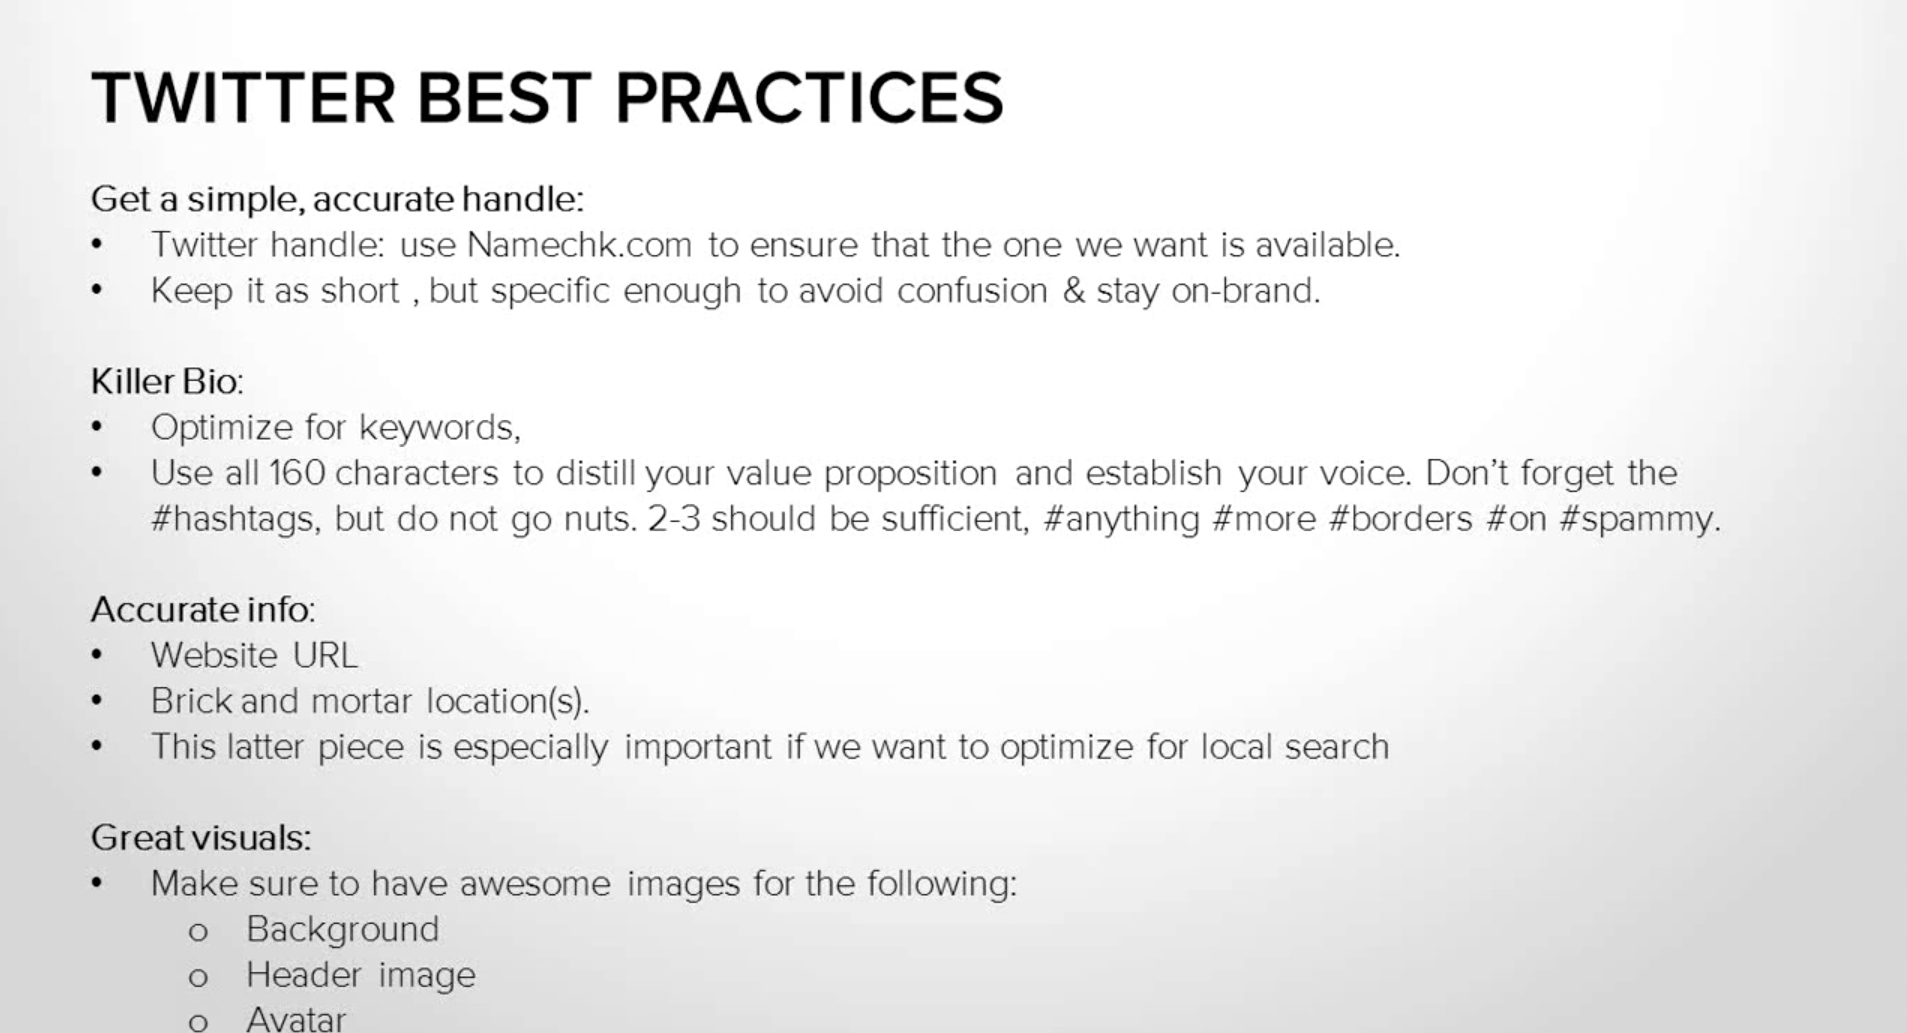 Twitter Best Practices from HubSpot